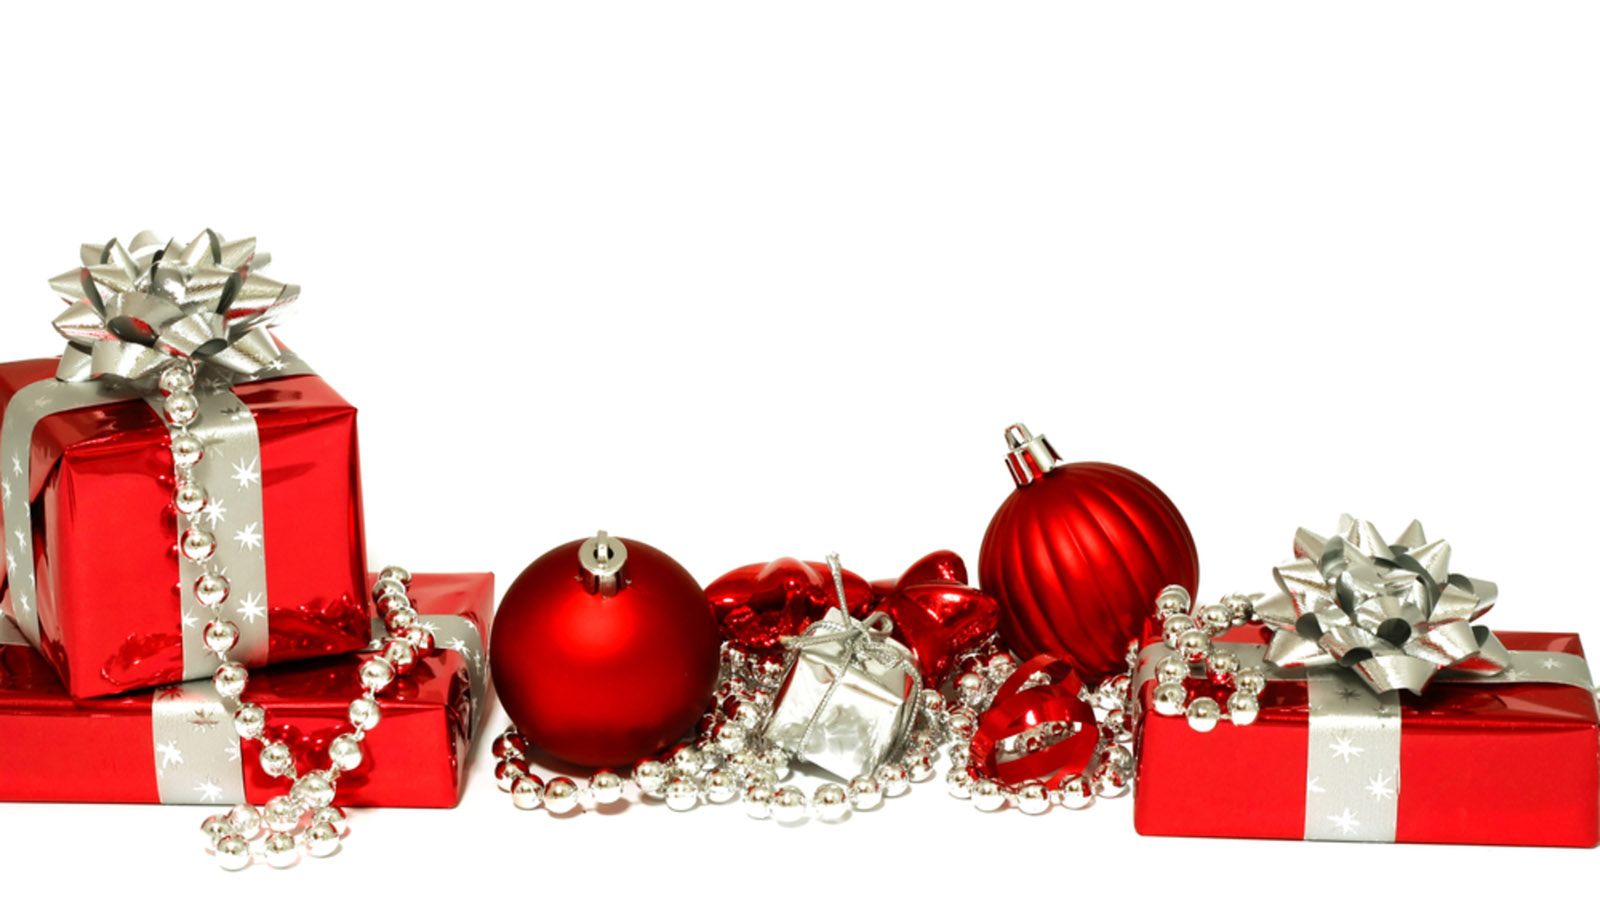 Images Of Christmas Red and Silver Decorations